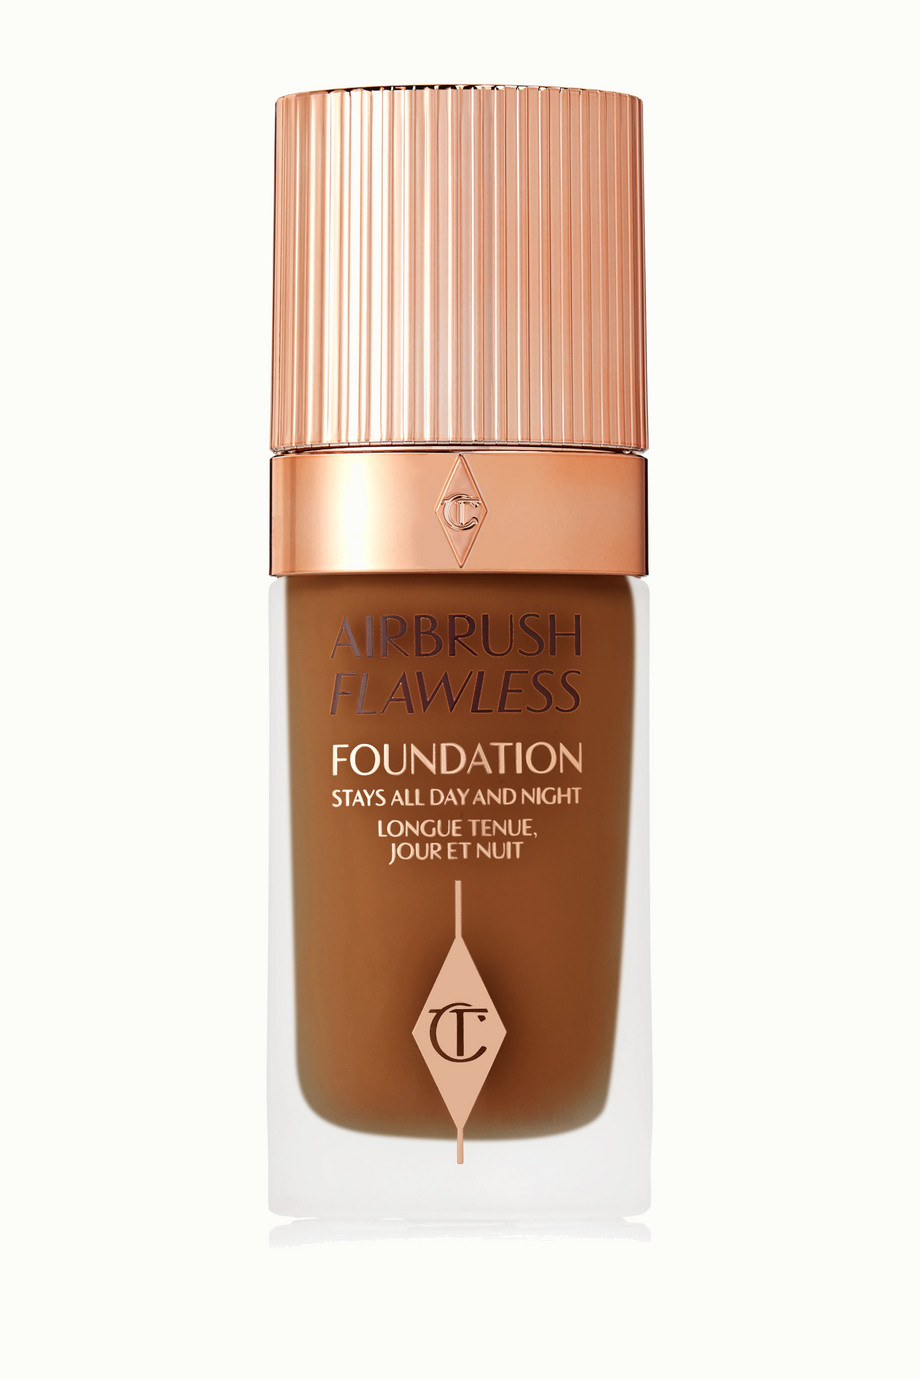 Charlotte Tilbury Airbrush Flawless Foundation - 12.5 Neutral, 30ml